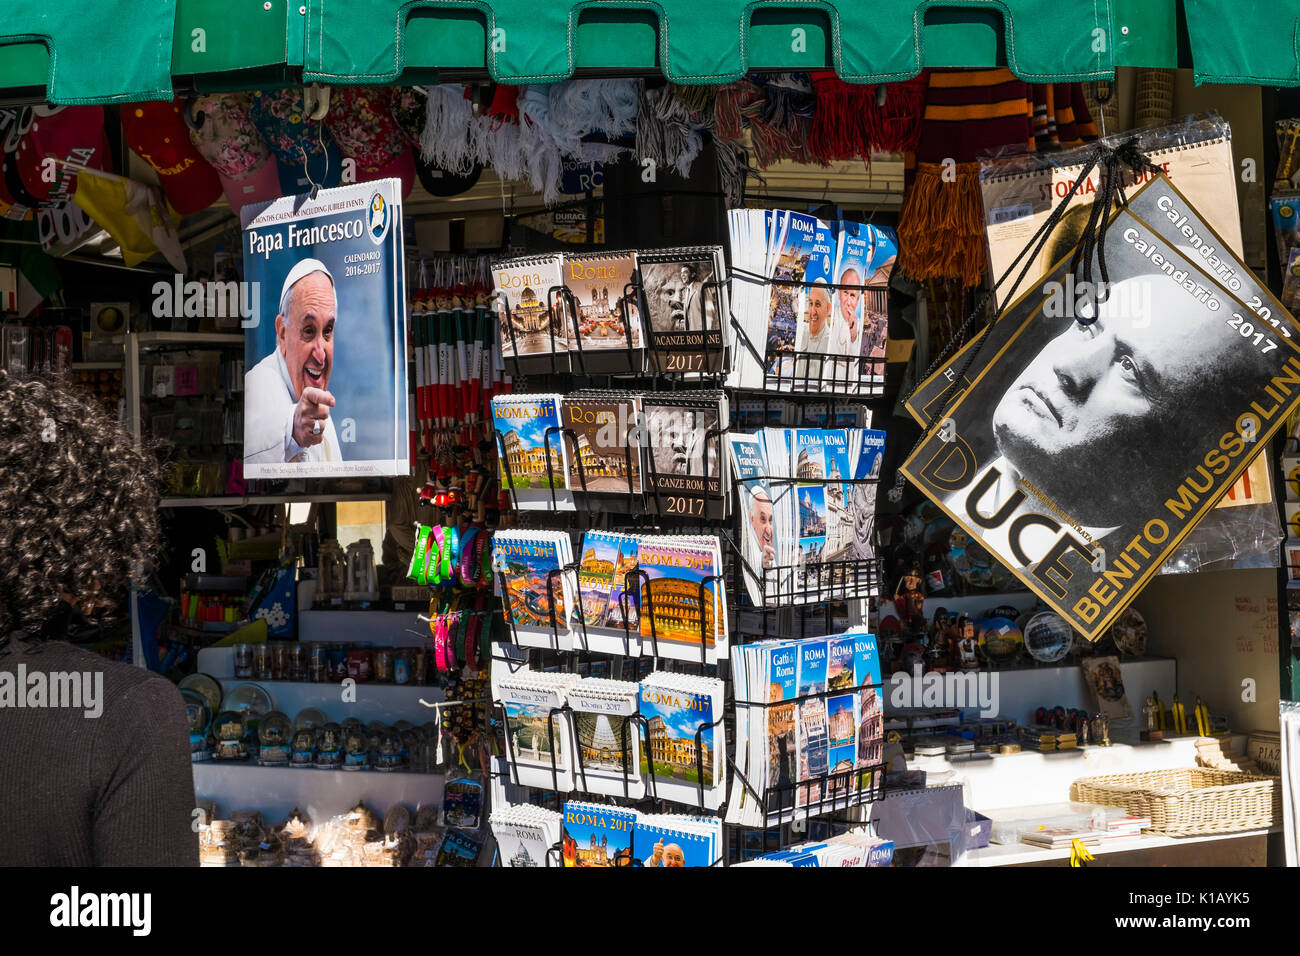 calendars for sale at a newsstand at piazza navonna, one of them displaying a portrait of pope francis, the other of benito mussolini, piazza navonna, - Stock Image